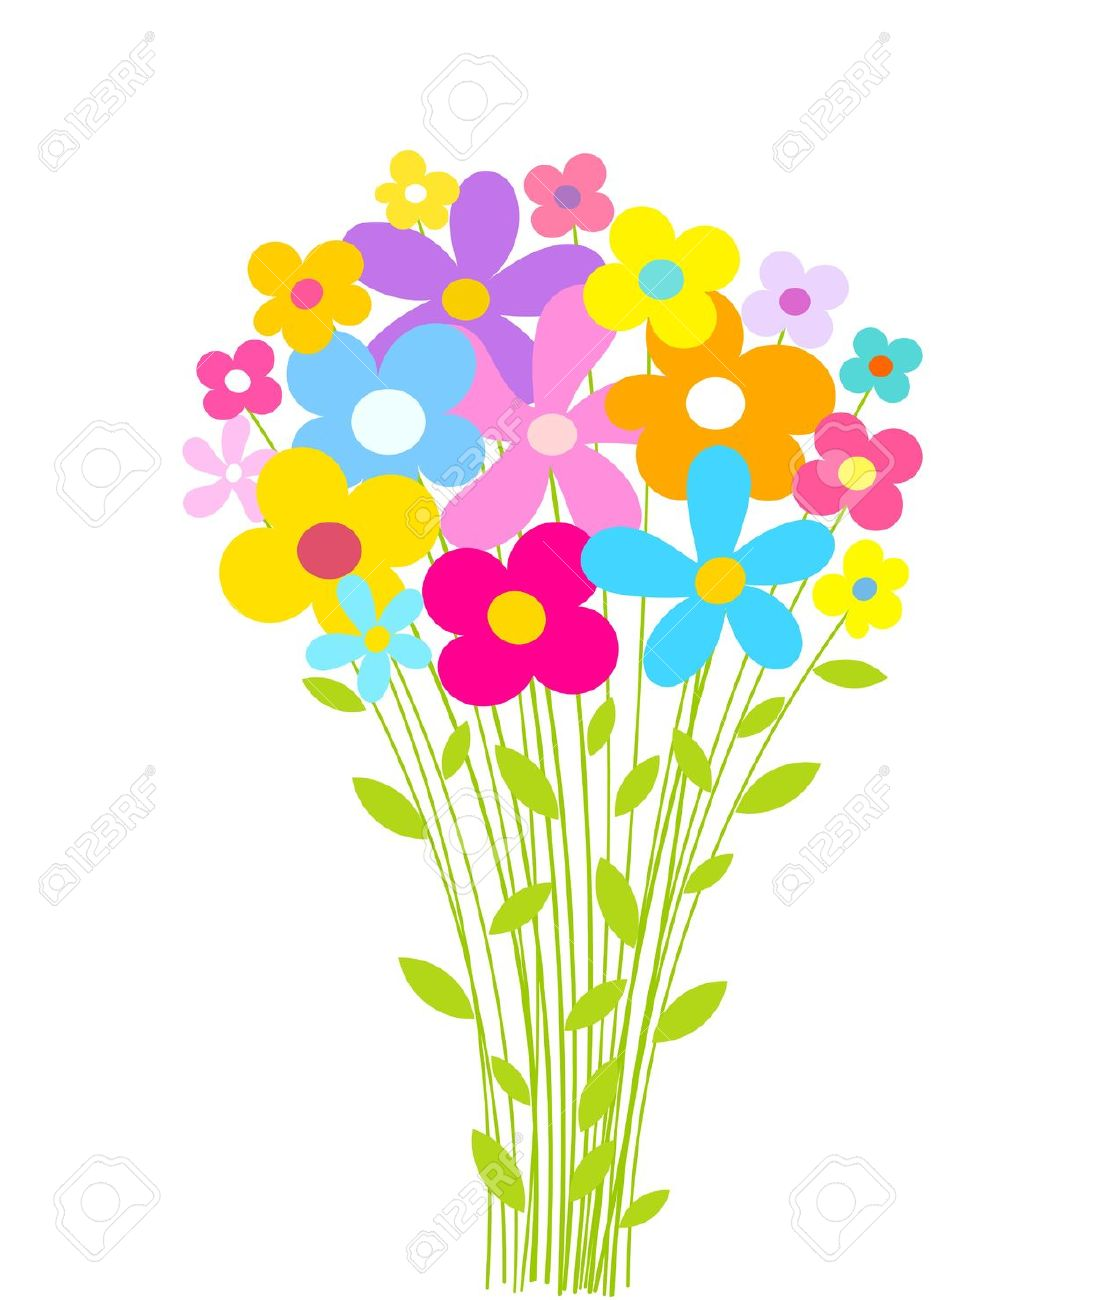 flower vase illustration with Cartoon Images Flowers on Home As Sketch Vase in addition Rub Tubes Fleurs 10 moreover Flower Pot further Kctpsde30089 Vase Flowers Happy Birthday Greeting Card By Talking Pictures Cards besides Indigo Watercolor Floral Design.